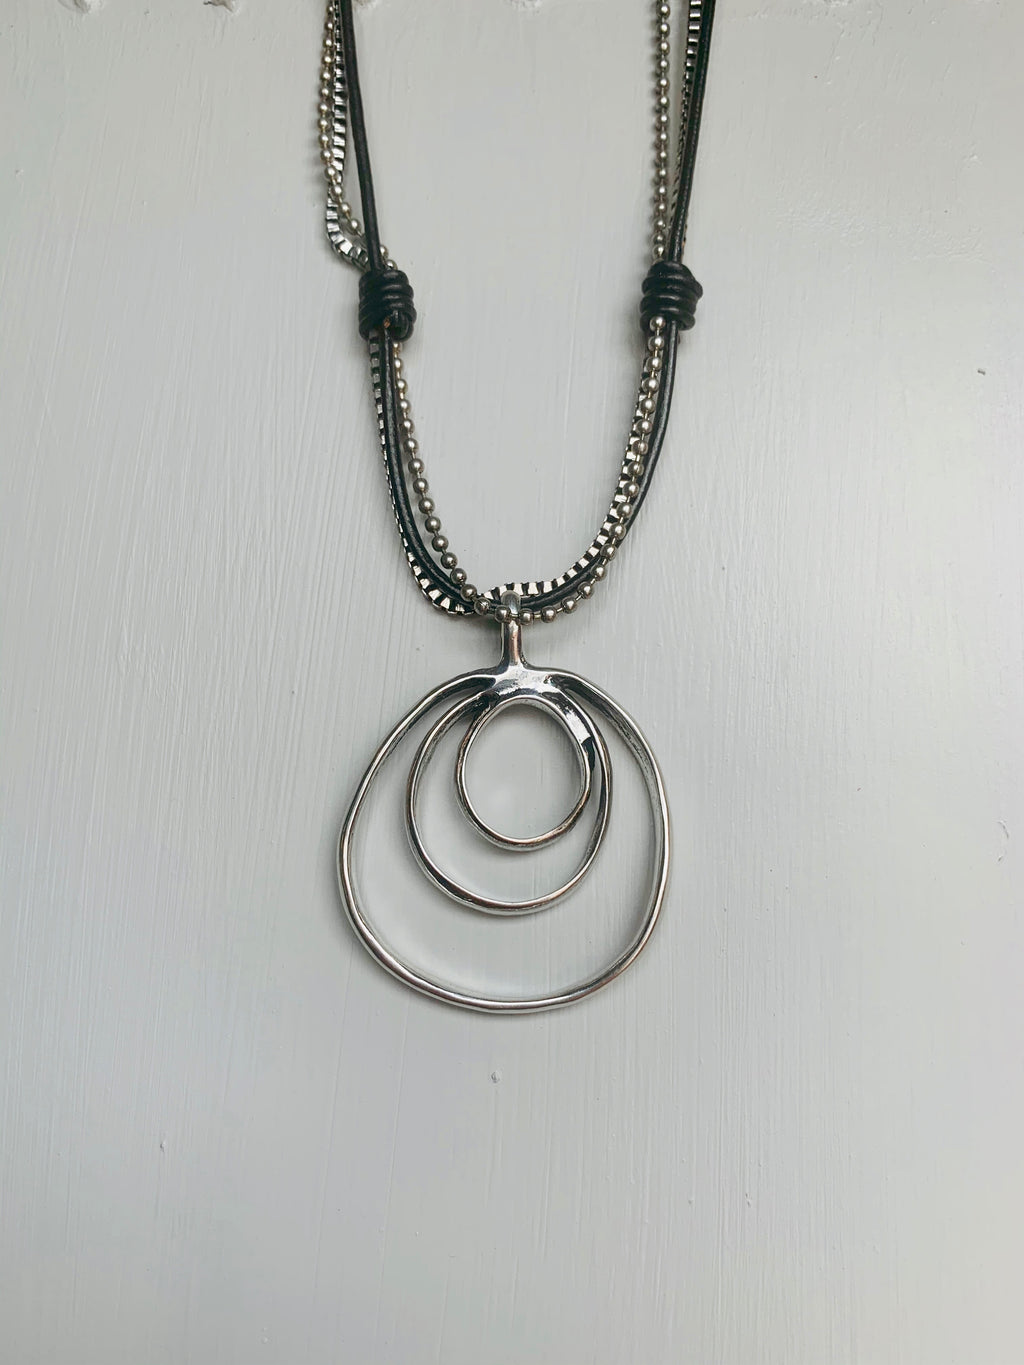 Silver & Black Leather Necklace - Gift Shop Wrought 'n Apples